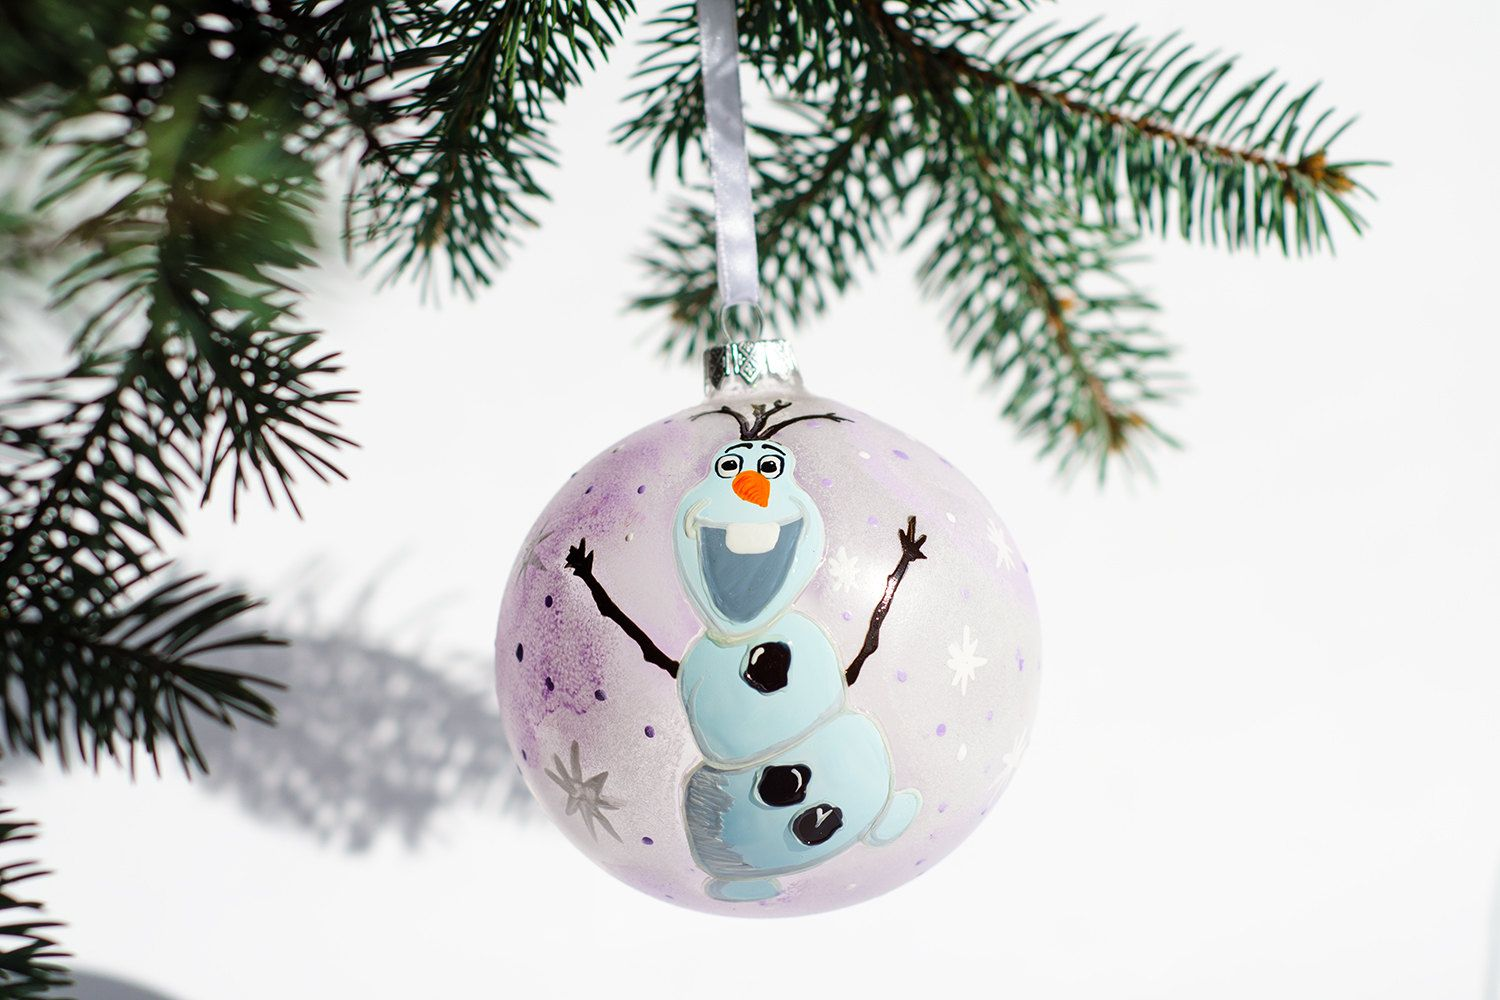 Frozen Olaf Ornament, Hand Painted Glass Ornaments, Christmas Bauble, Snowman Gift by Vitraaze on Etsy